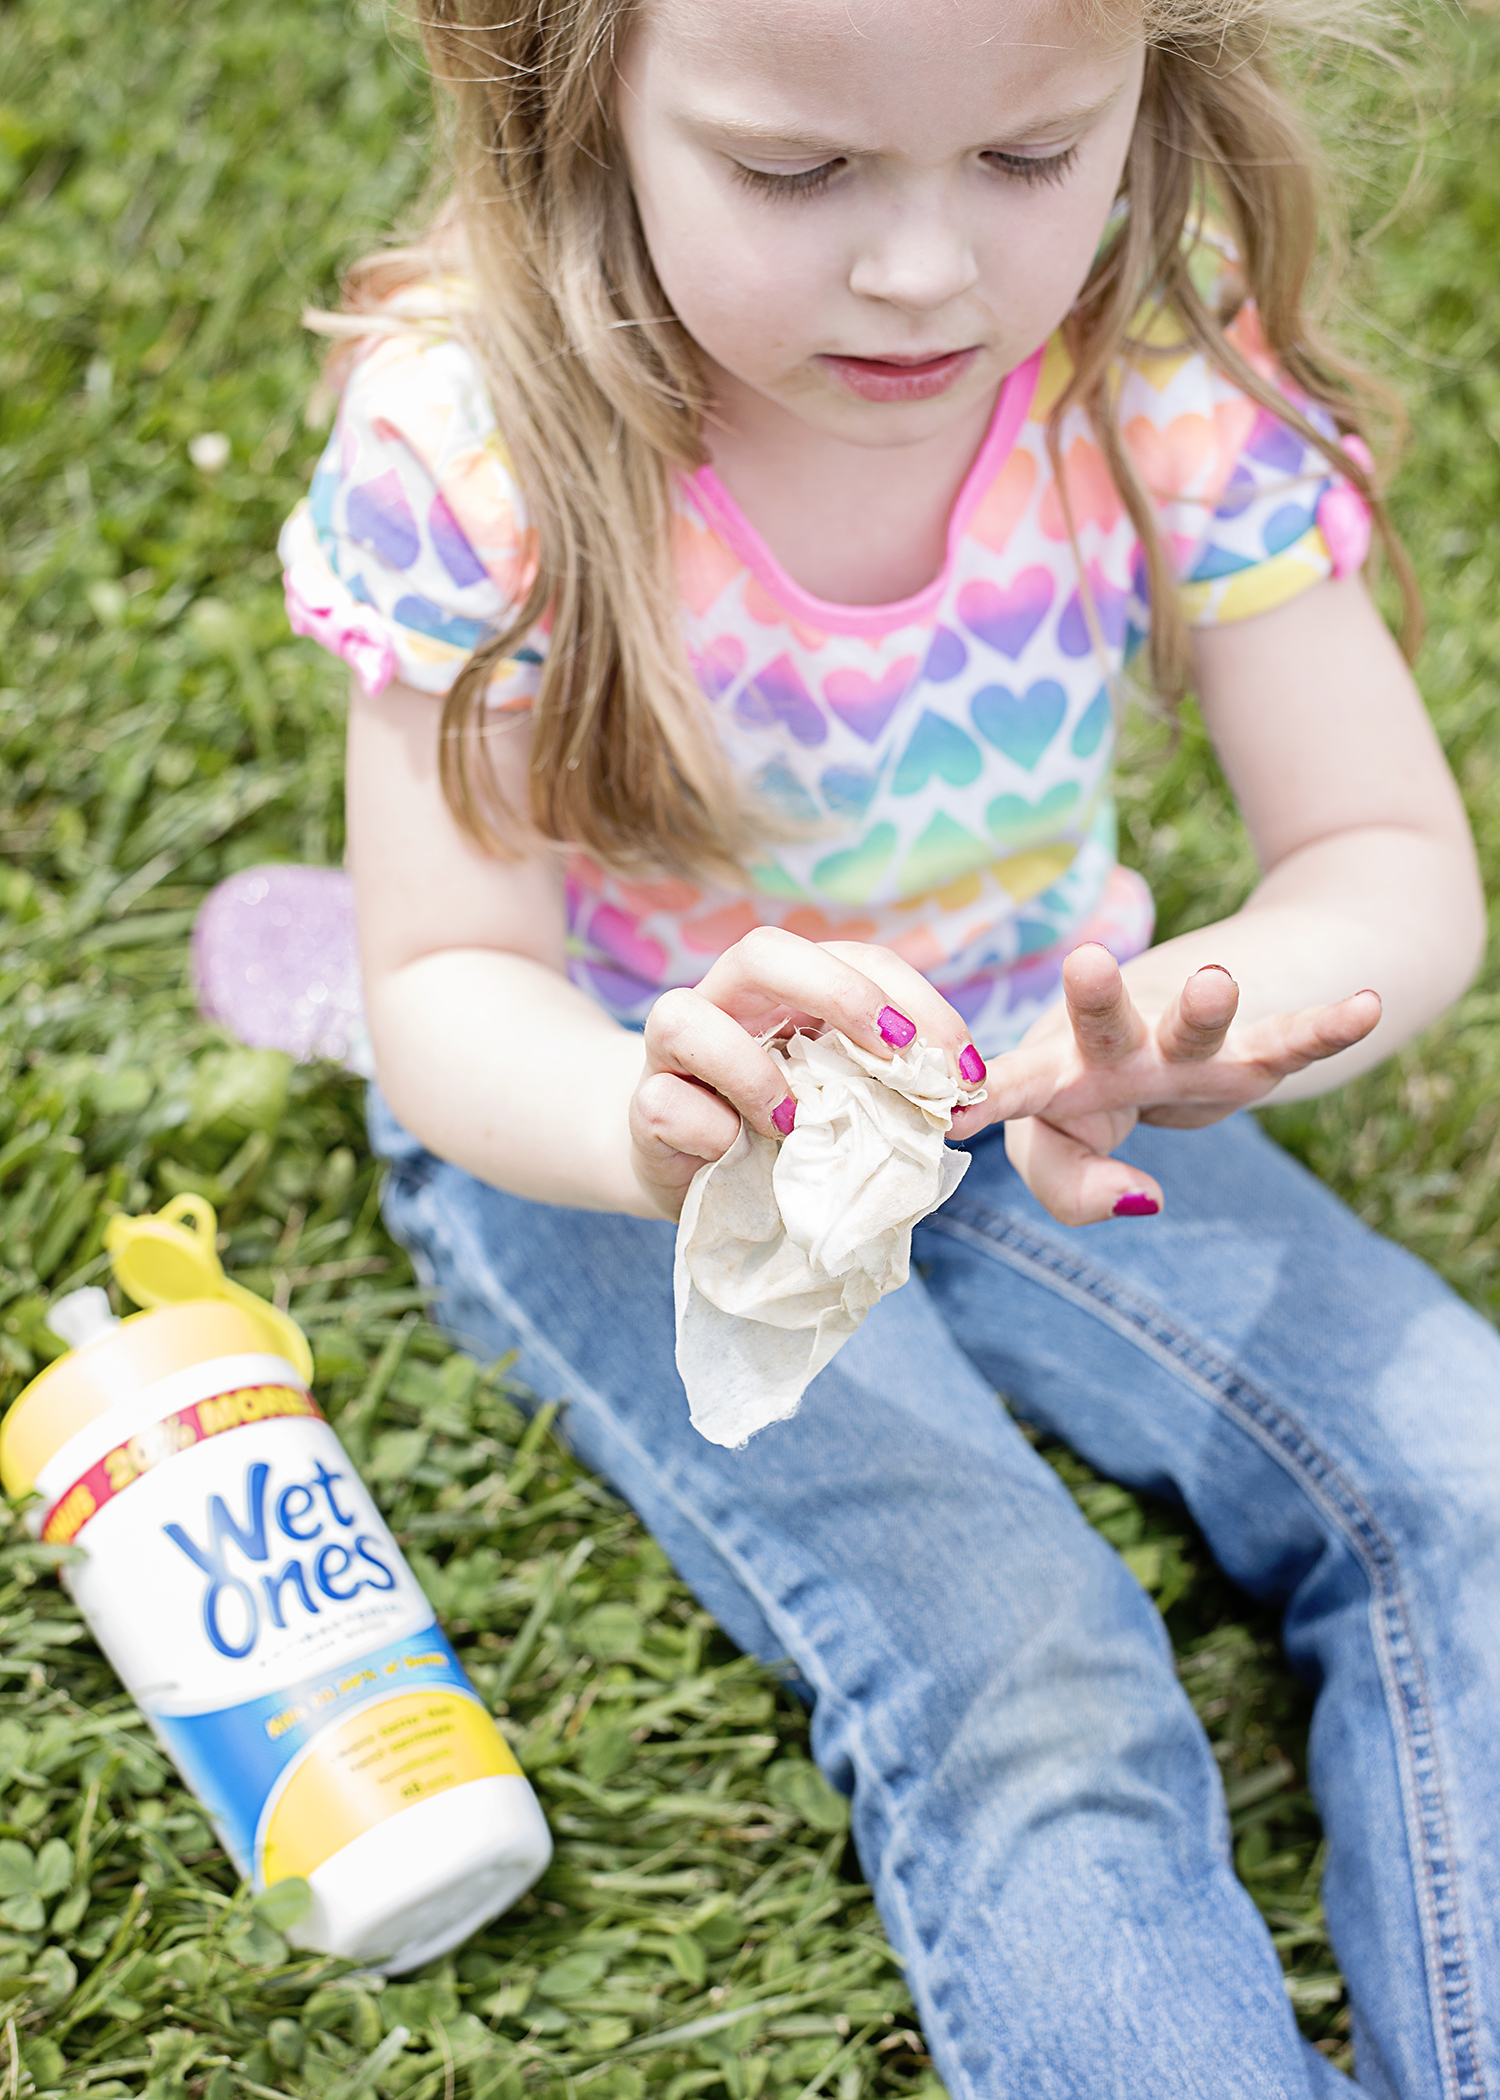 #1 Way to Keep Little Hands Clean at the Park and at Play!